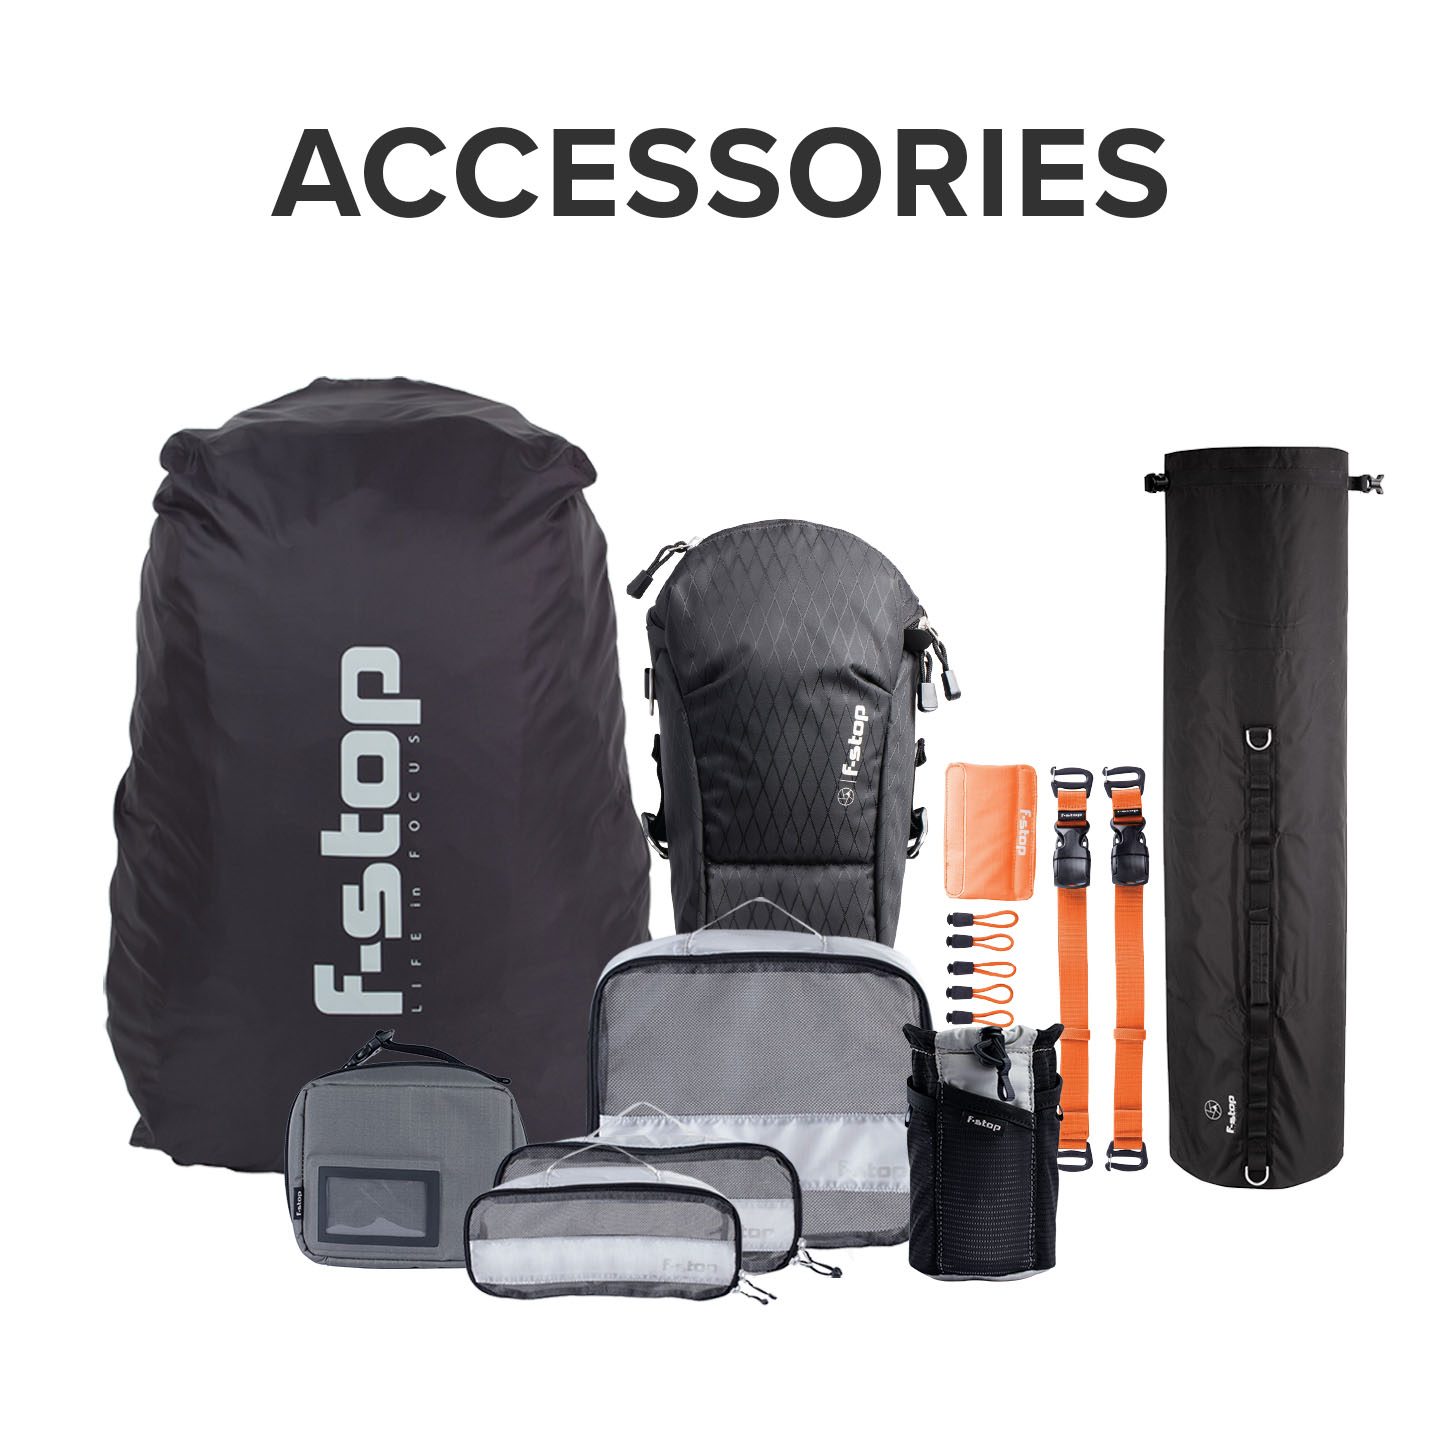 f-stop camera backpack accessories